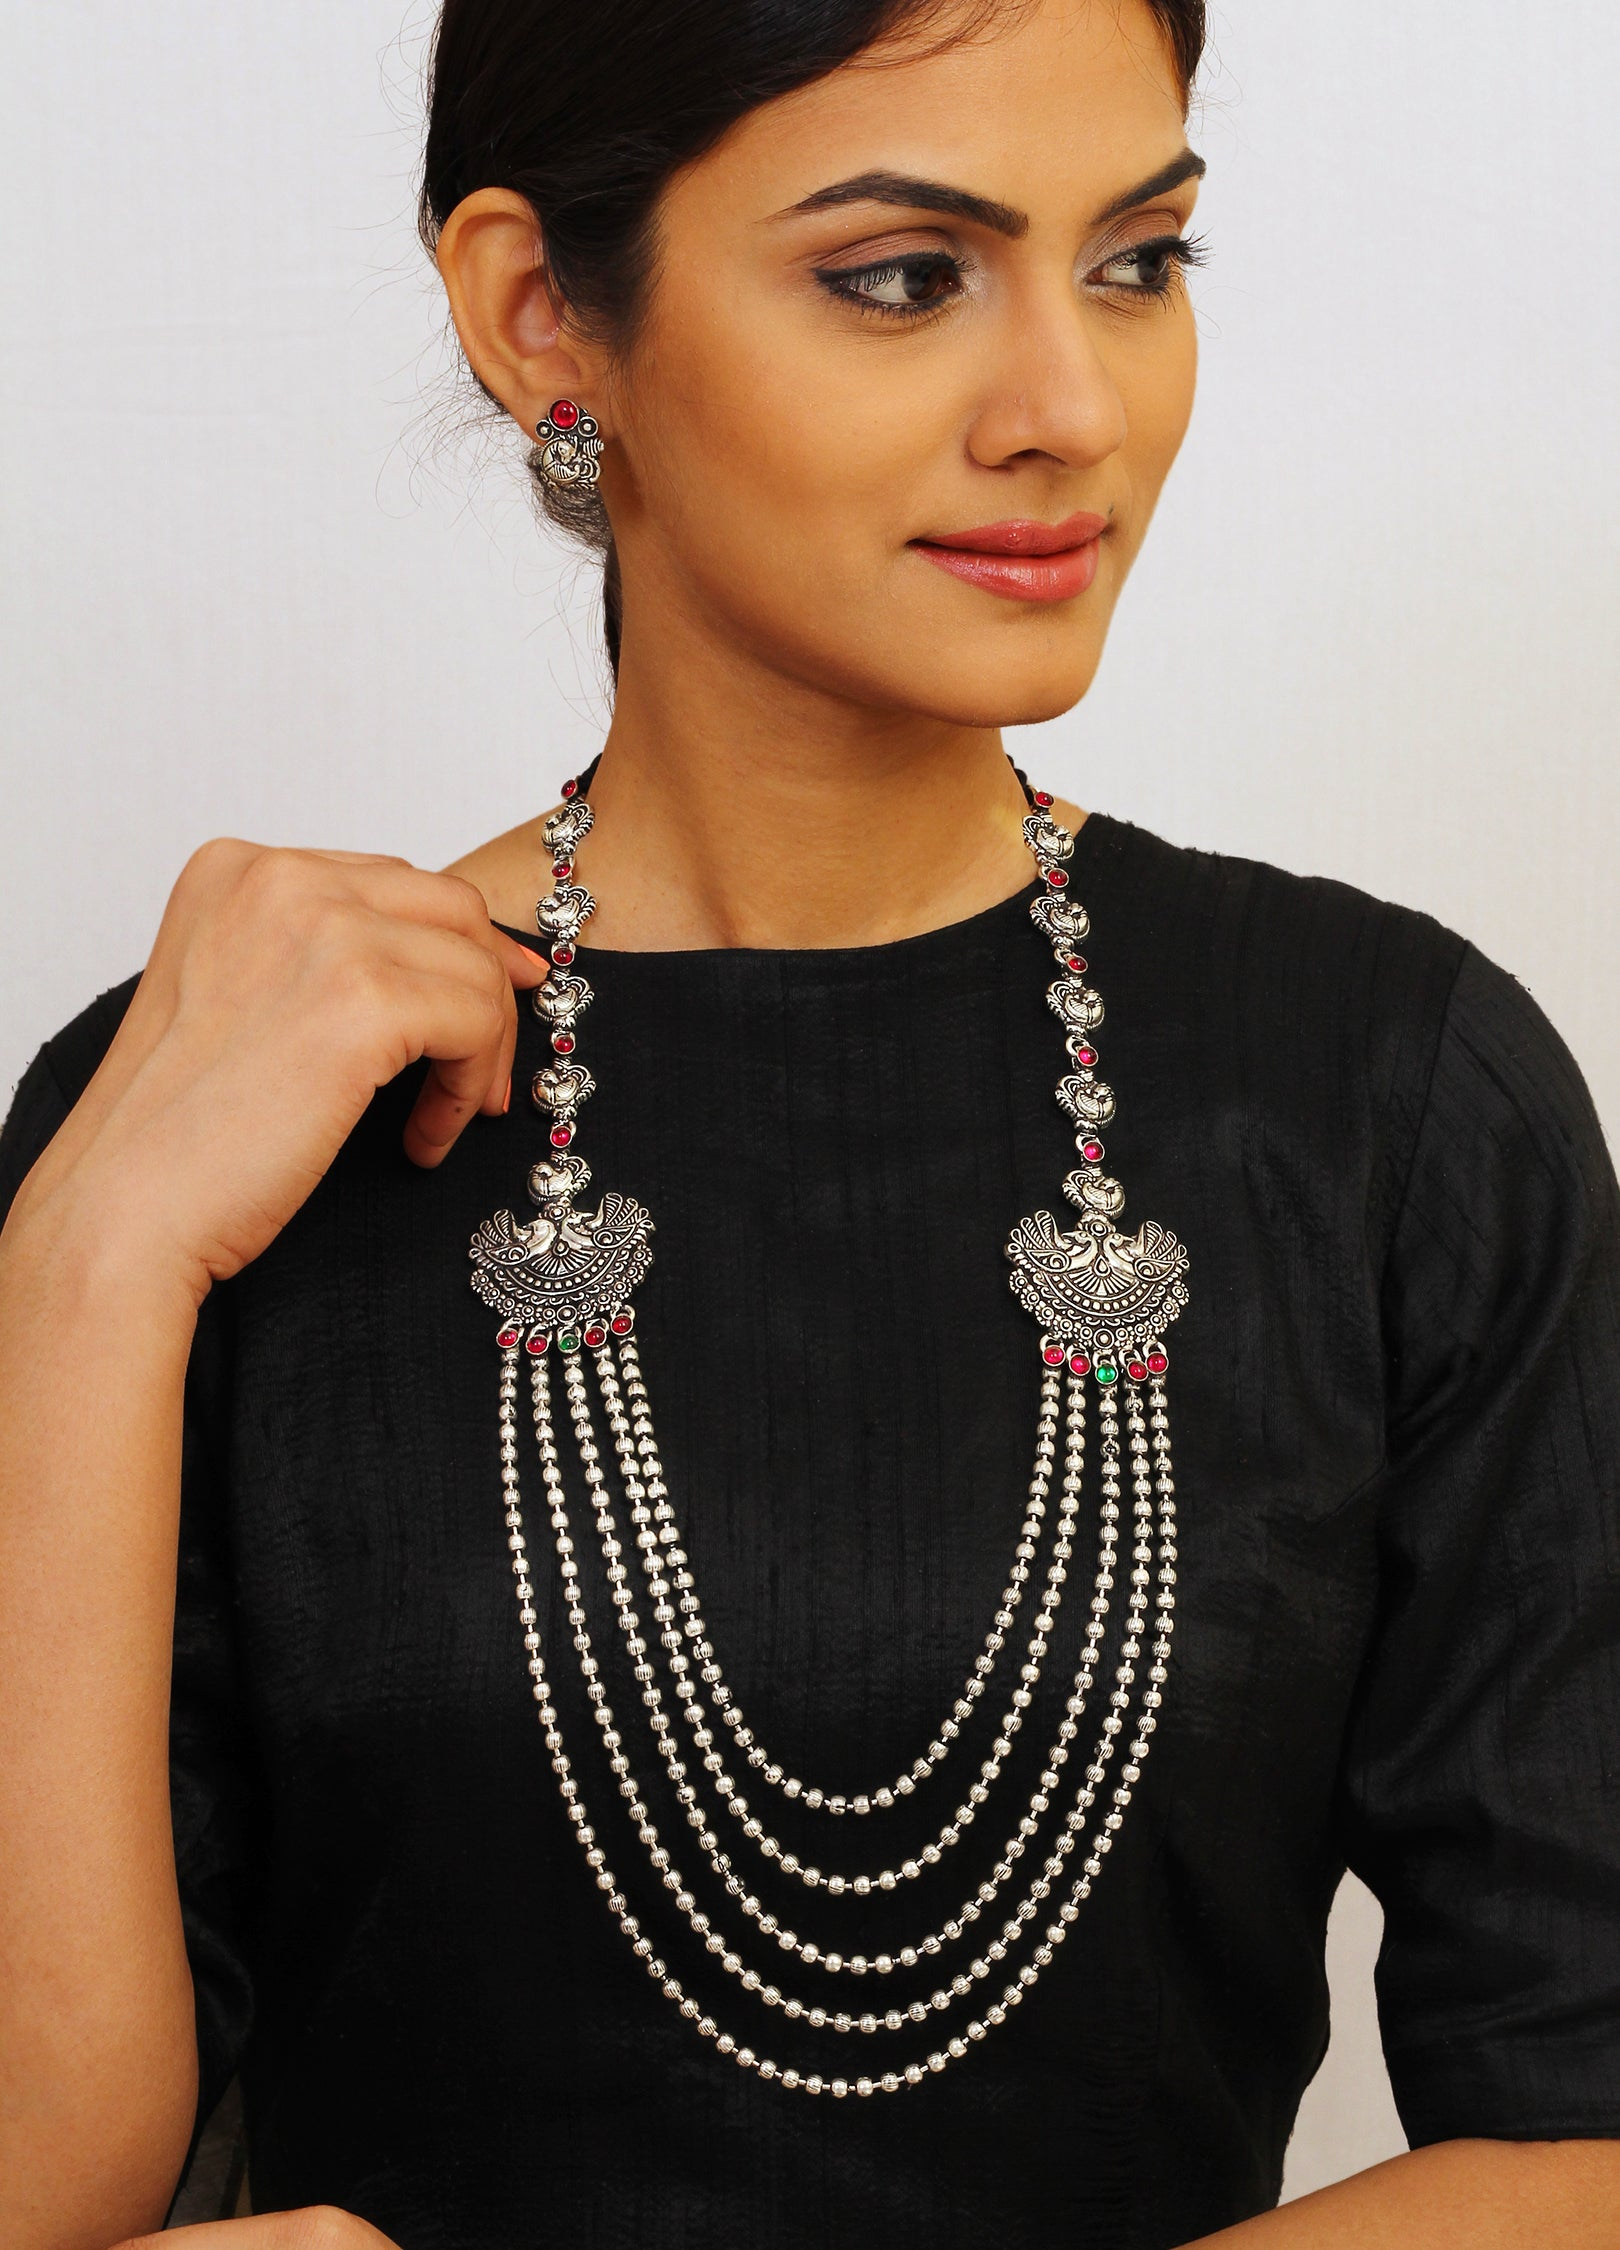 Oxidised German Silver Peacock Design Long Necklace Set